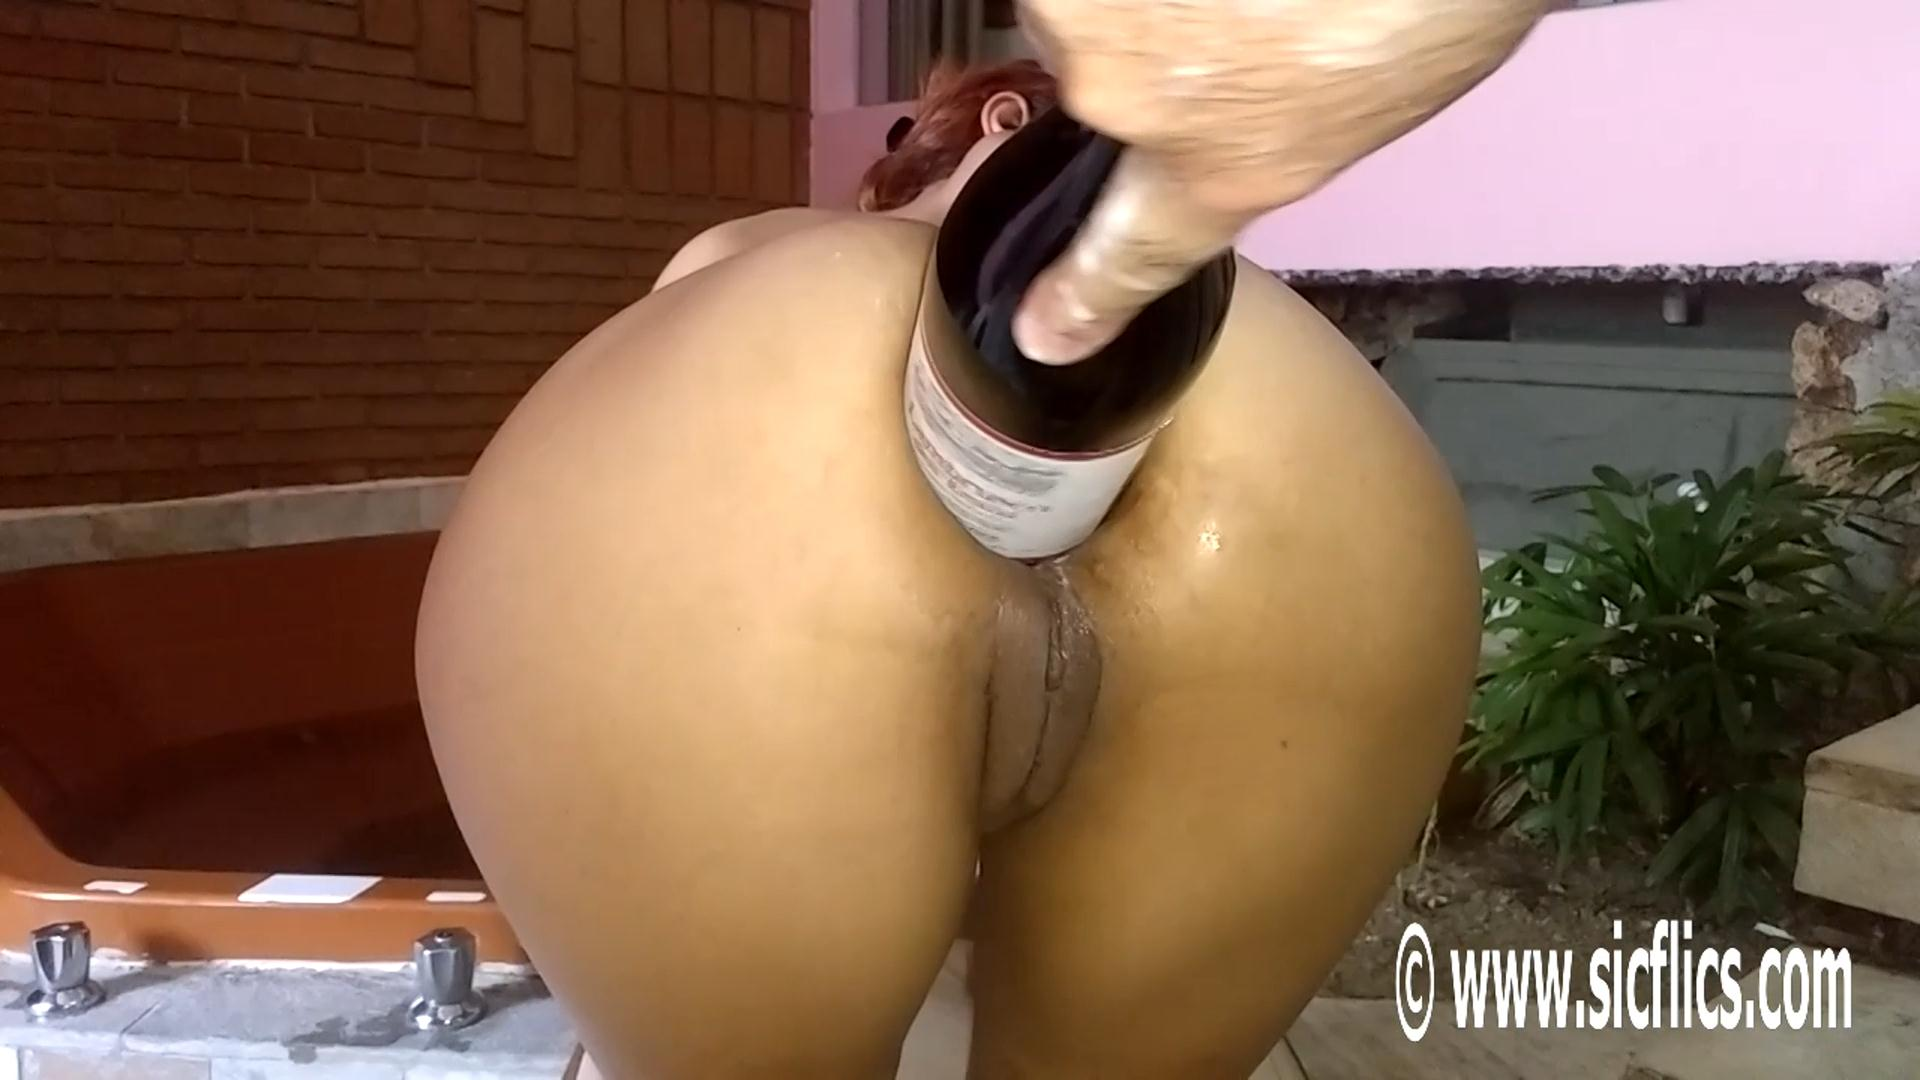 female ass fucked with champagne bottle porn